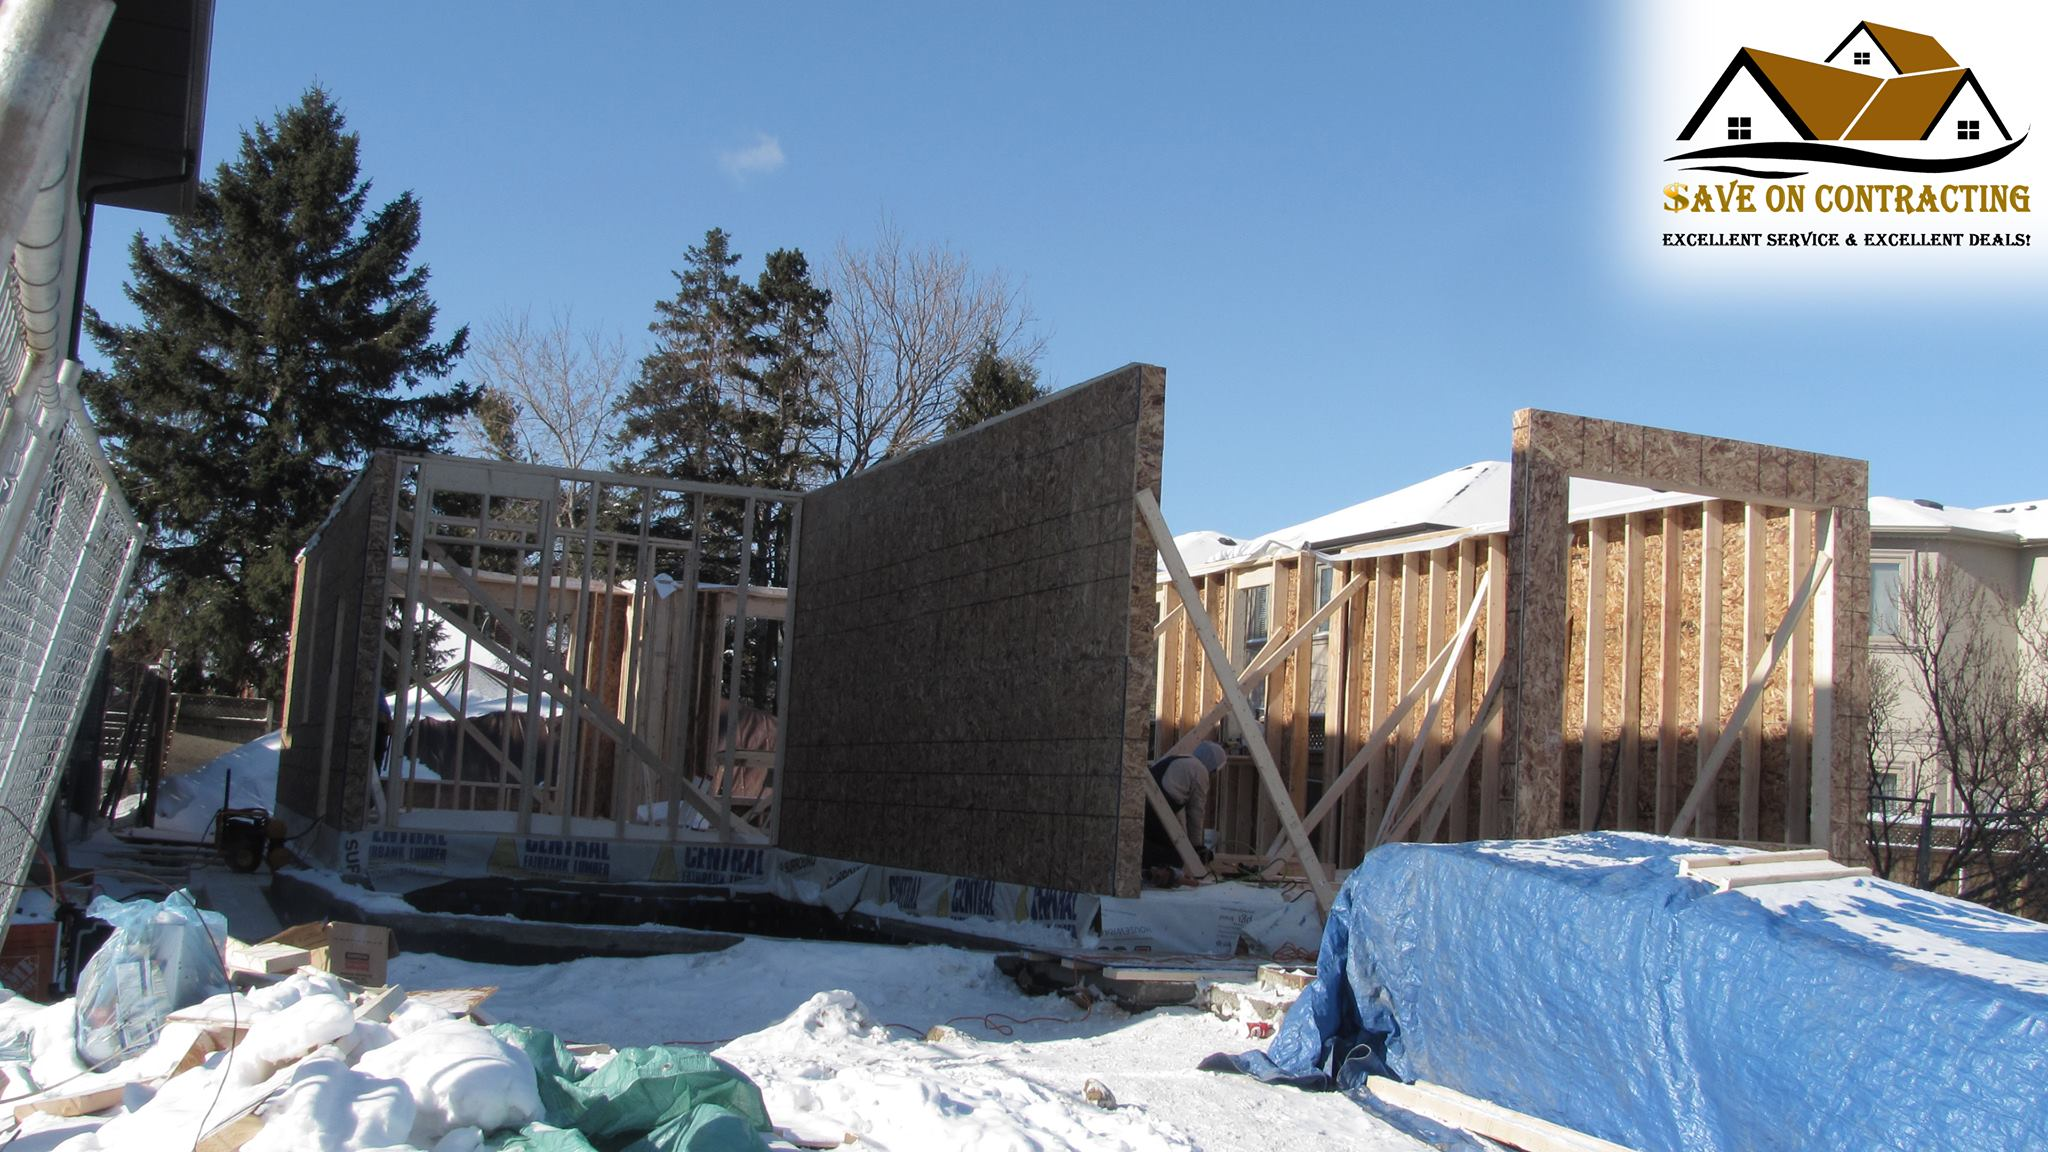 Building contractors Toronto Save on Contracting